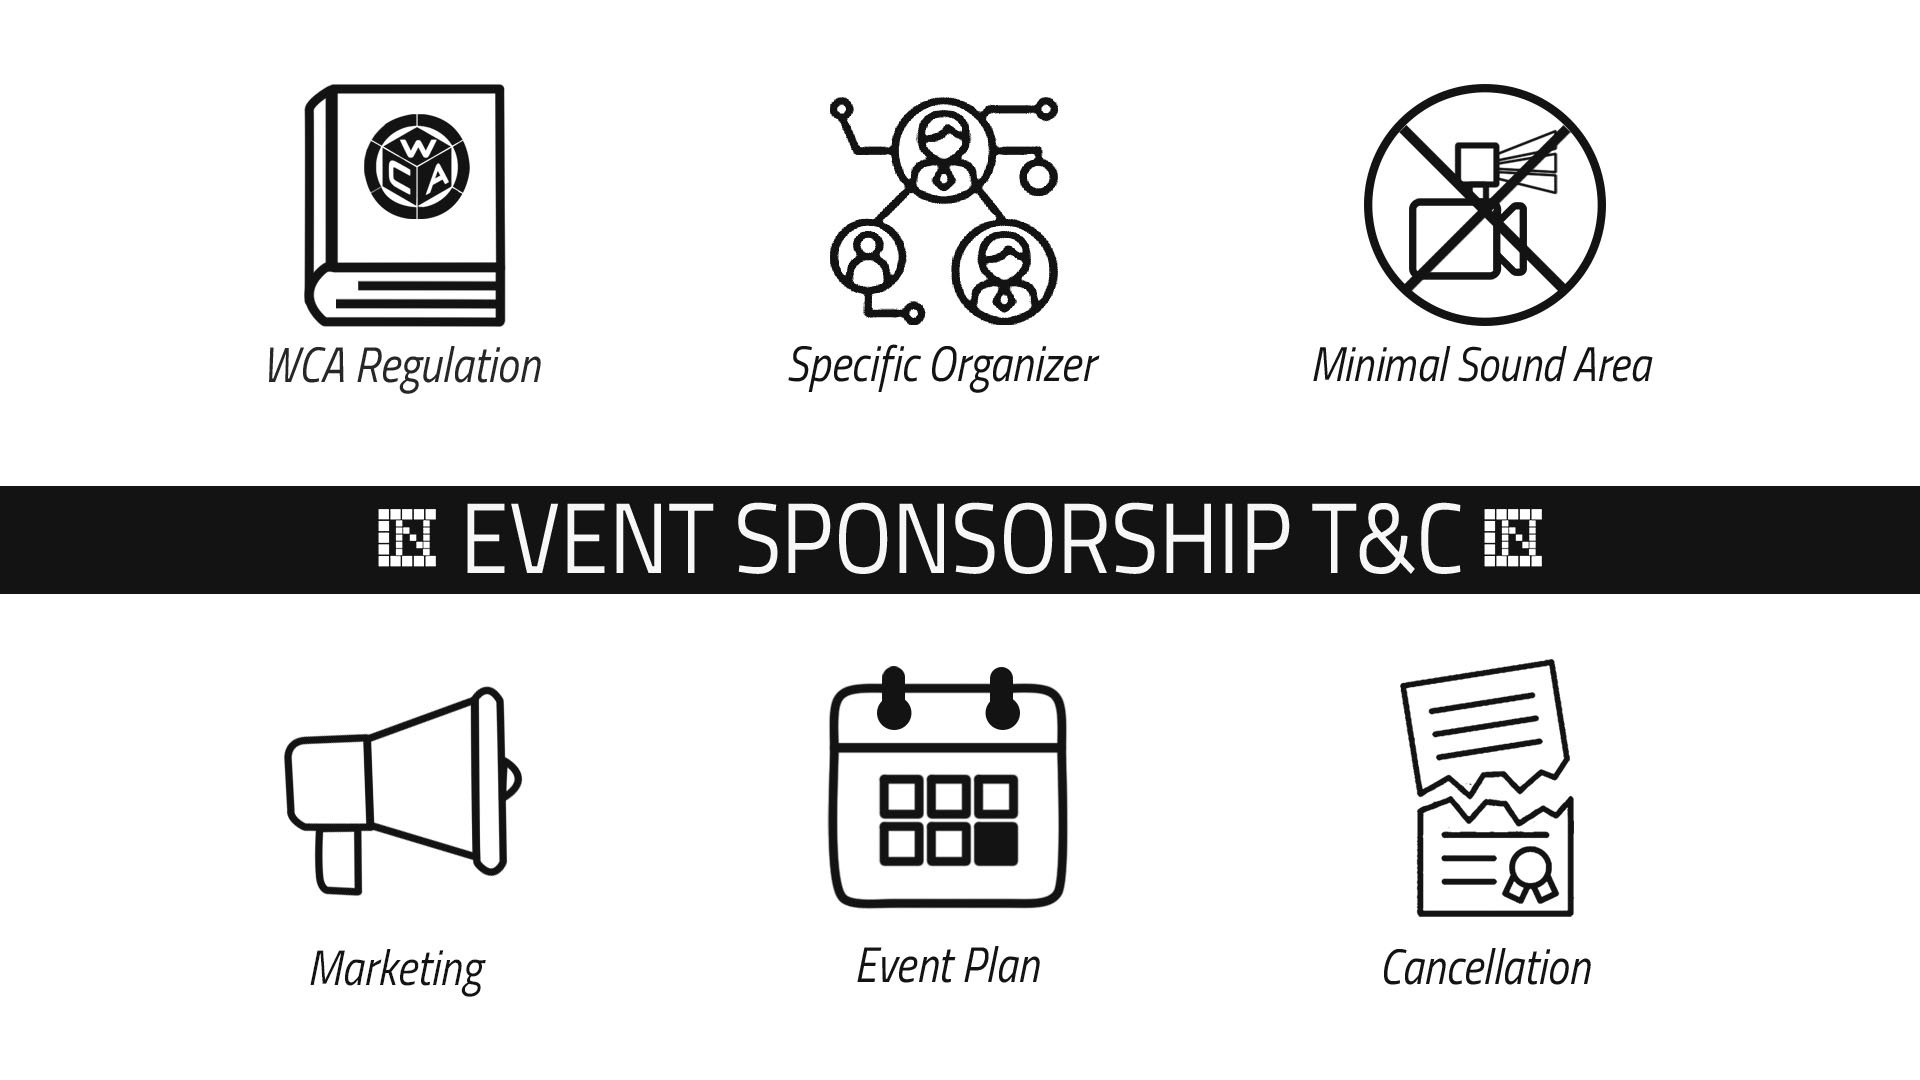 Event sponsorship T&C